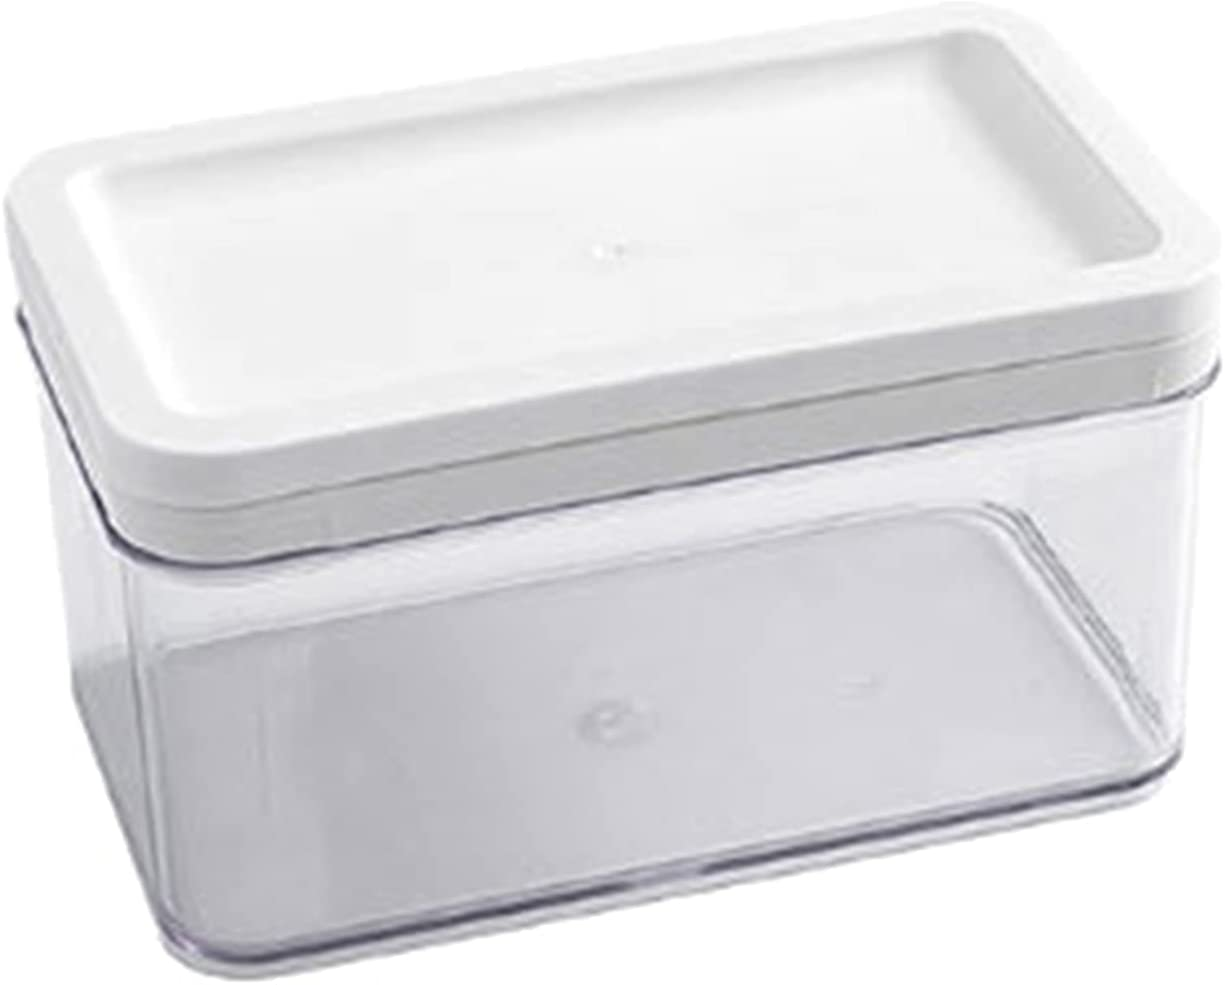 Cheese Storage Box, Butter Container Eco-friendly Rust-proof White Color Butter Storage Box with Wire Cutters for Home Refrigerator Two Grids